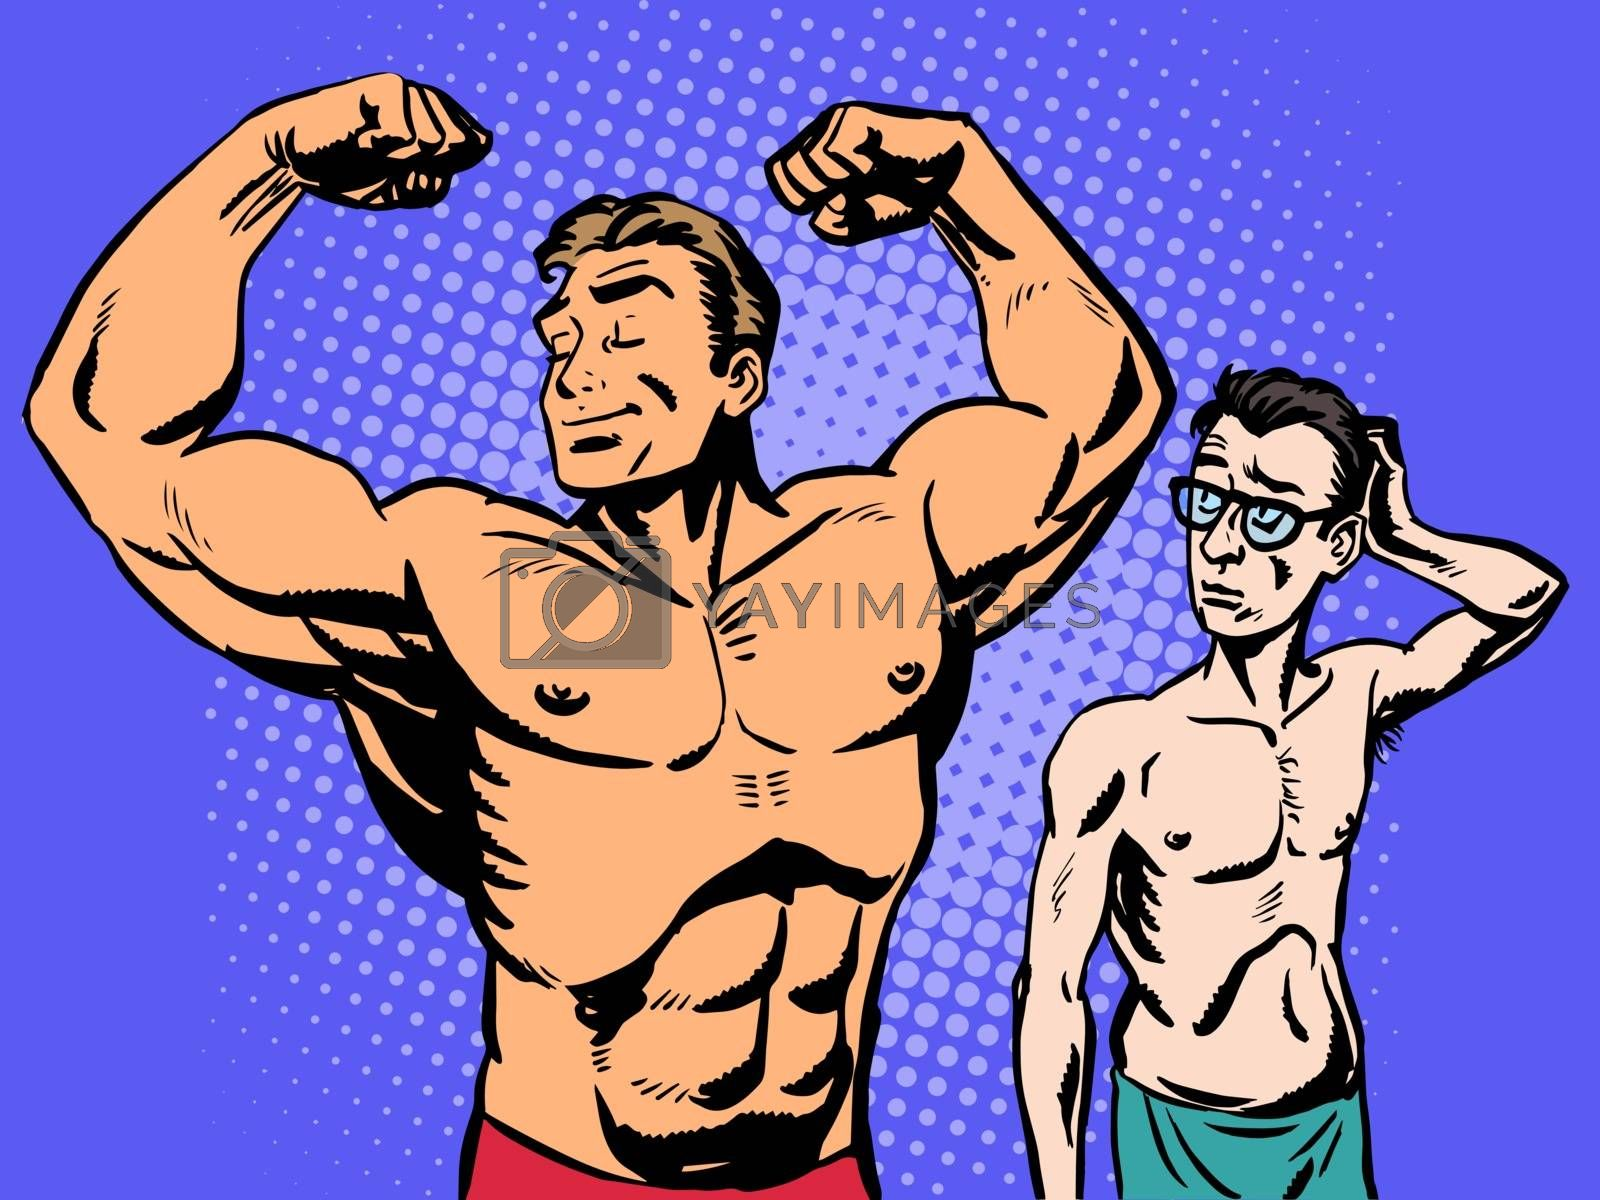 Bodybuilder and thin man is the sport of fitness. Retro style pop art humor